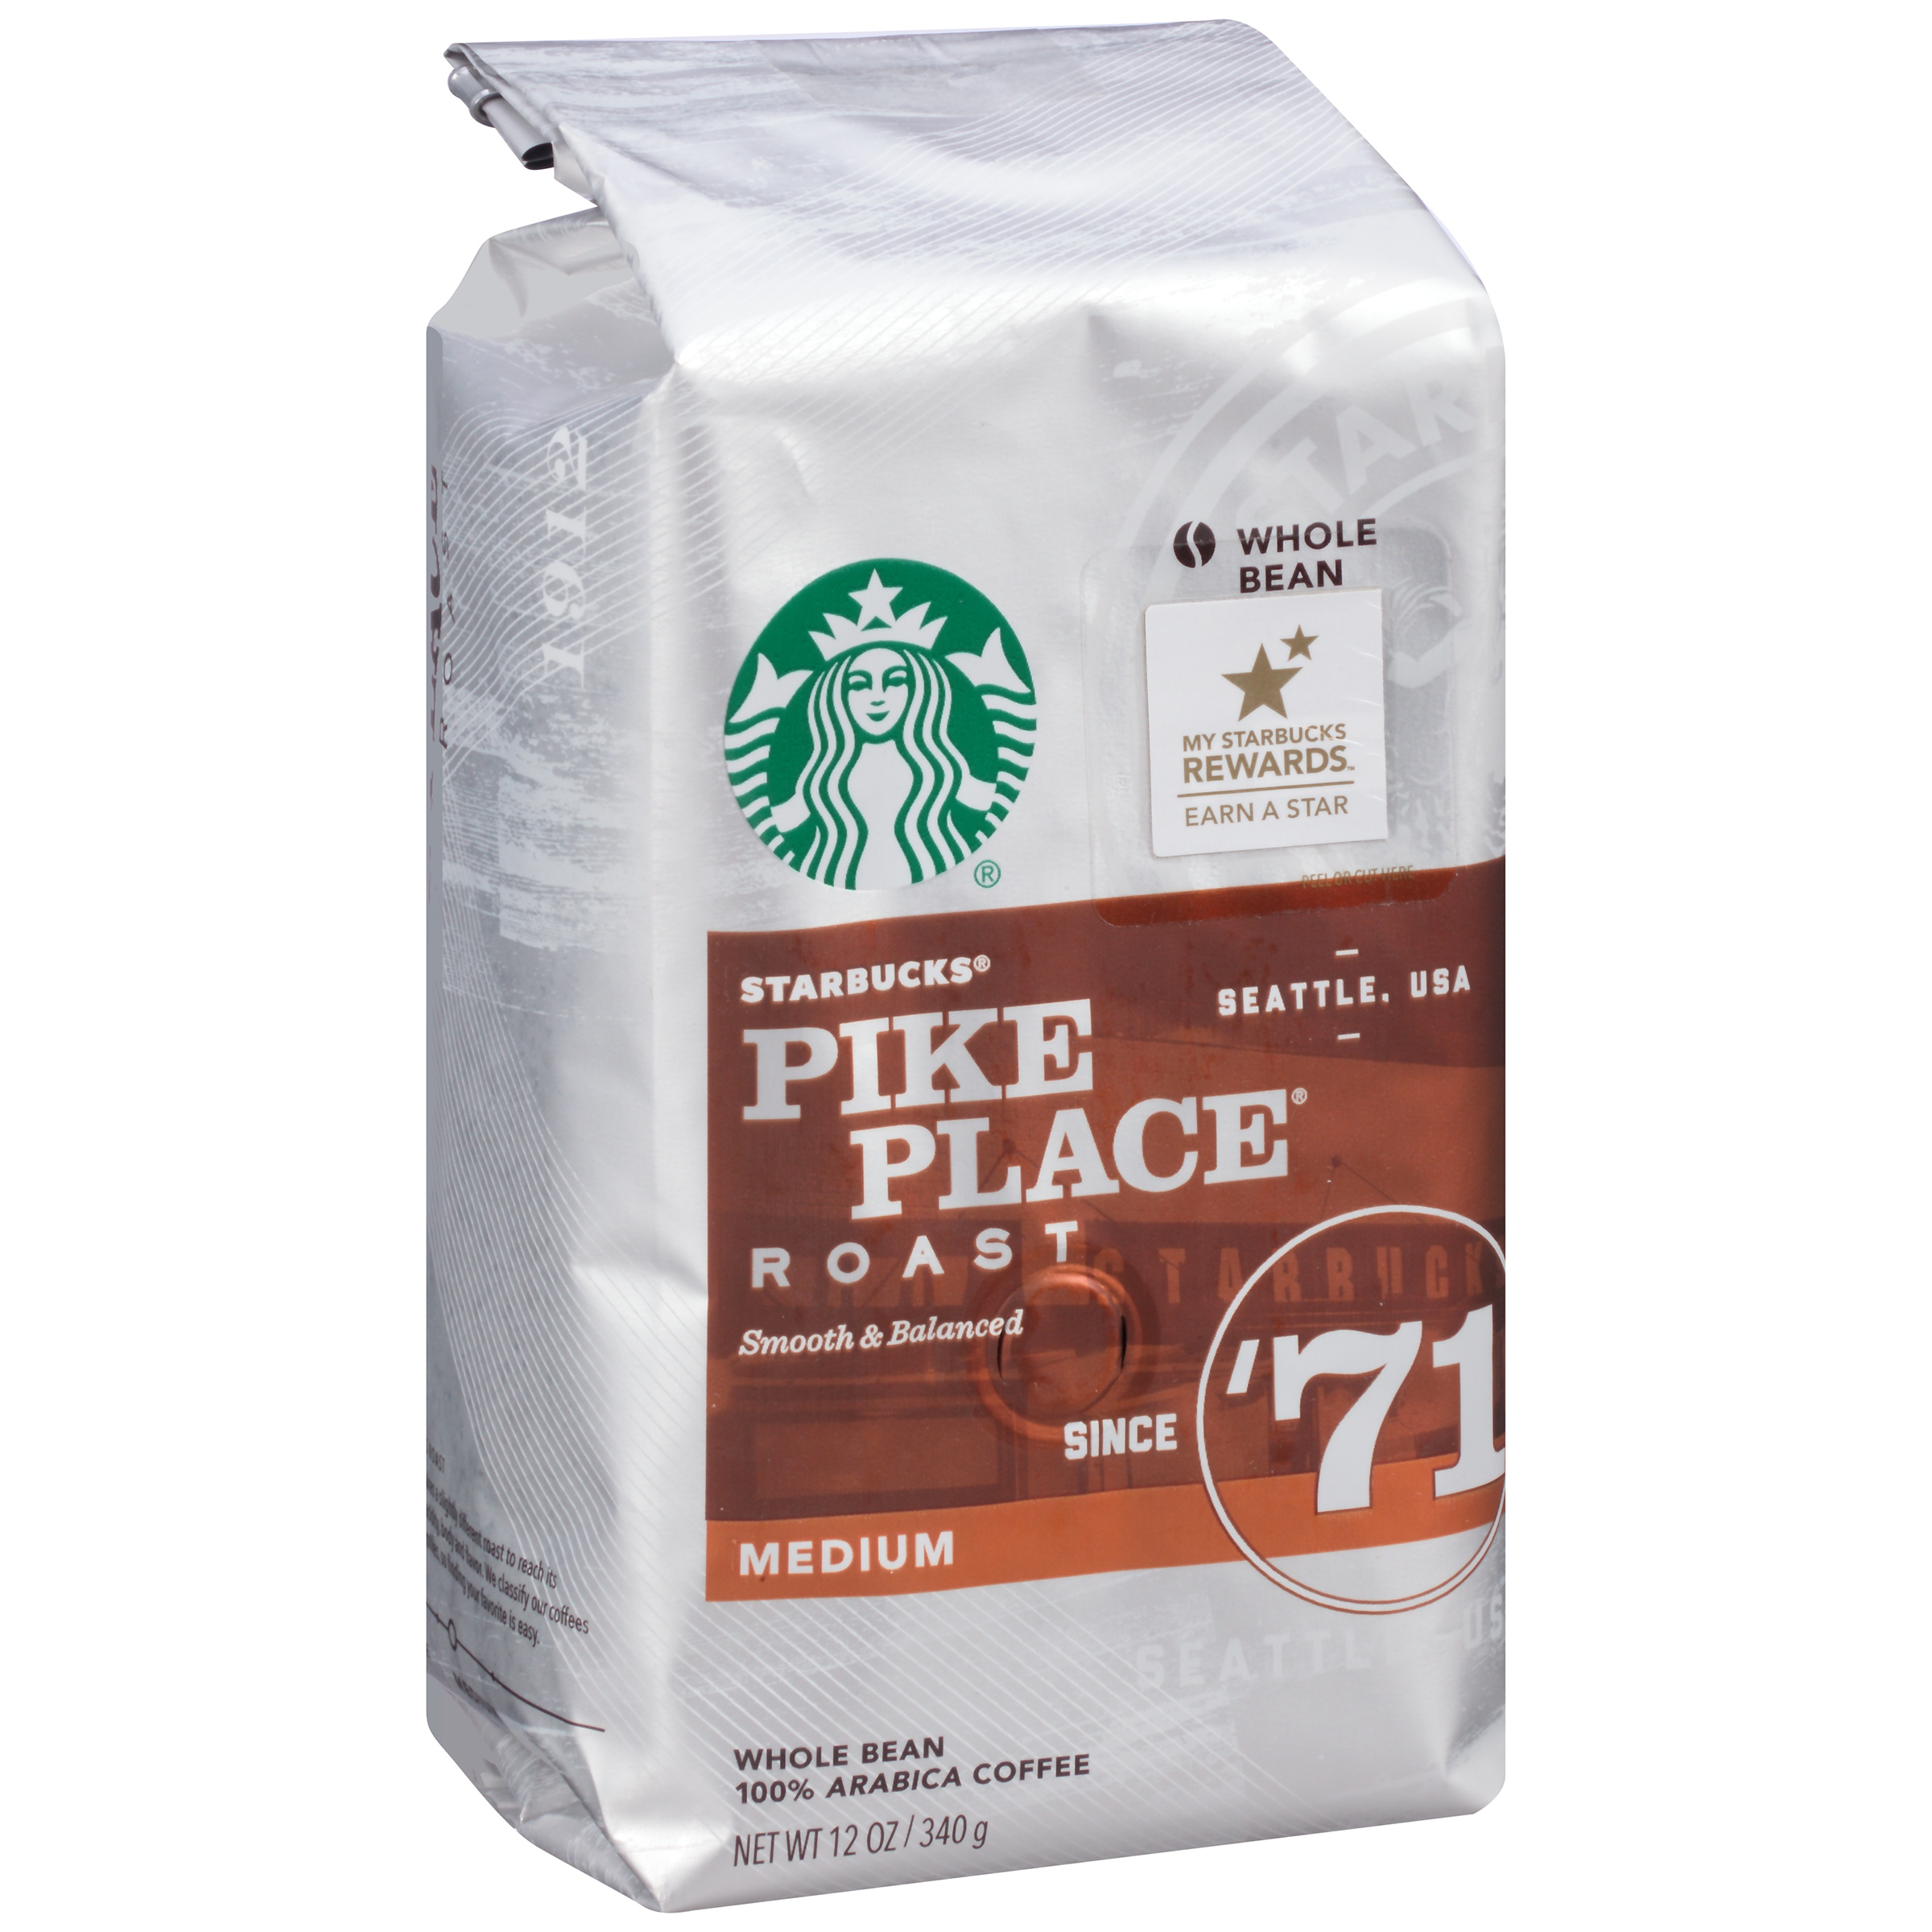 Starbucks® Pike Place® Roast Smooth & Balanced Medium 12 oz. Package